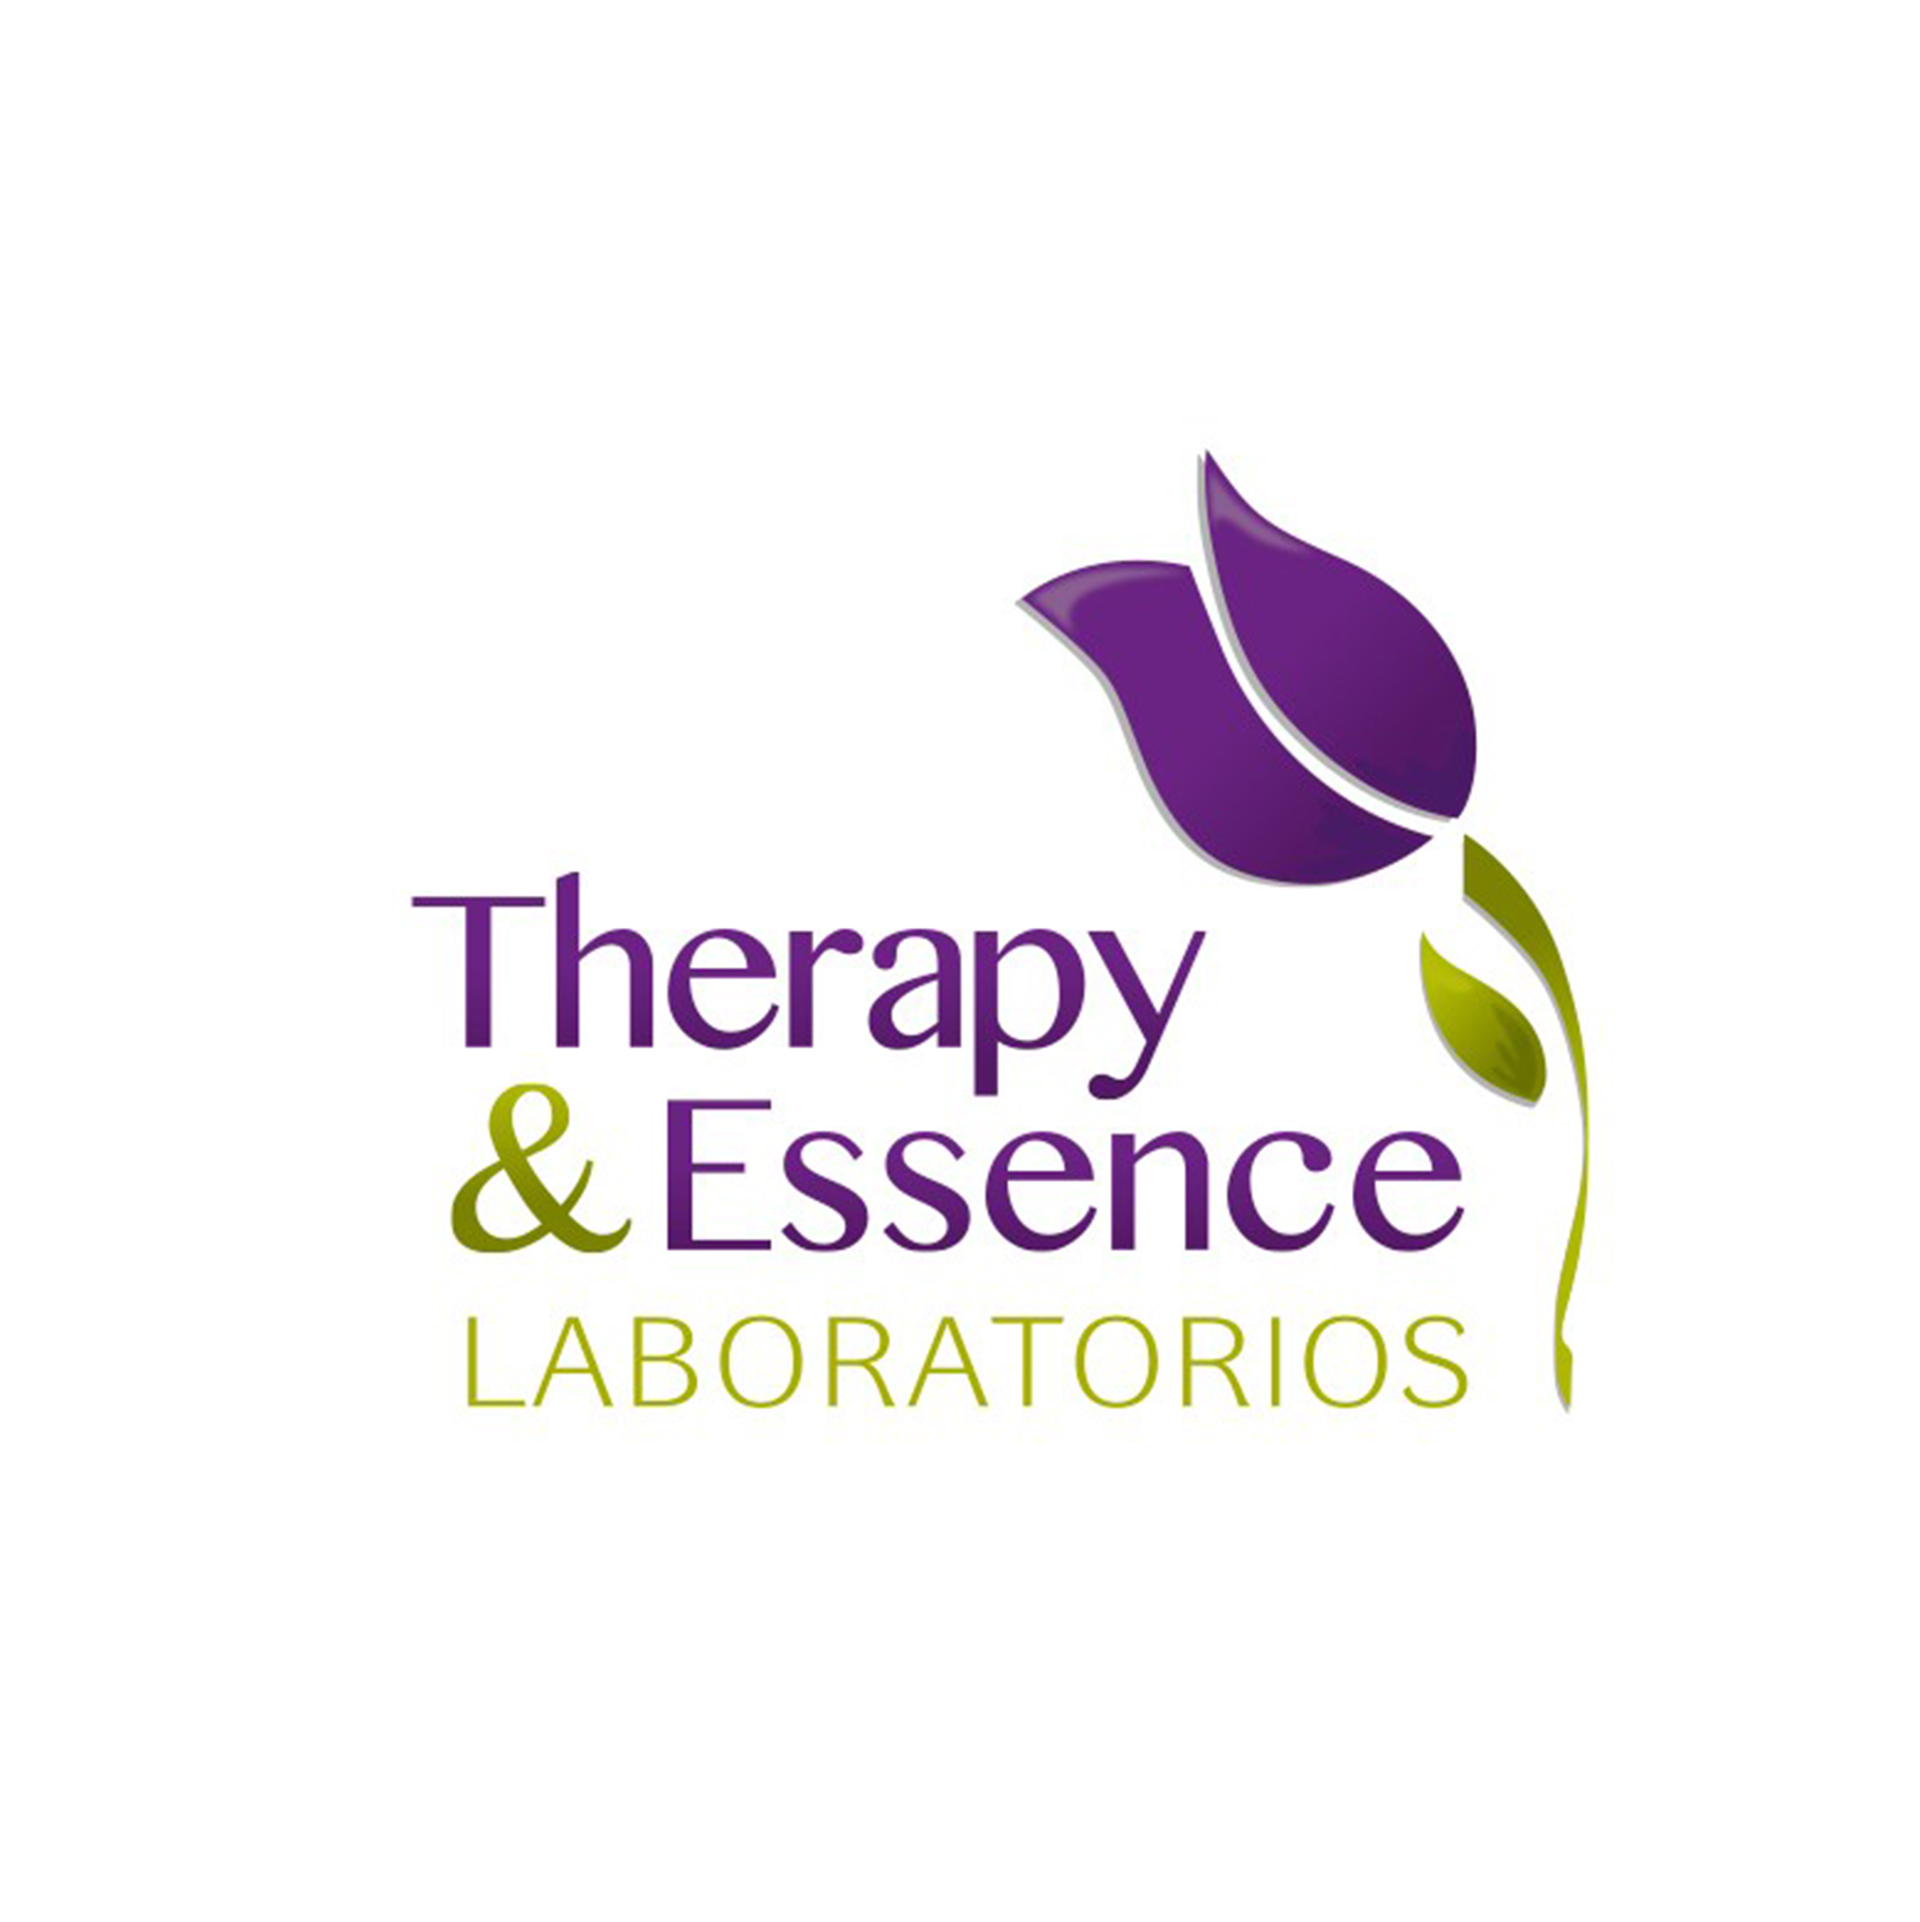 THERAPY & ESSENCE